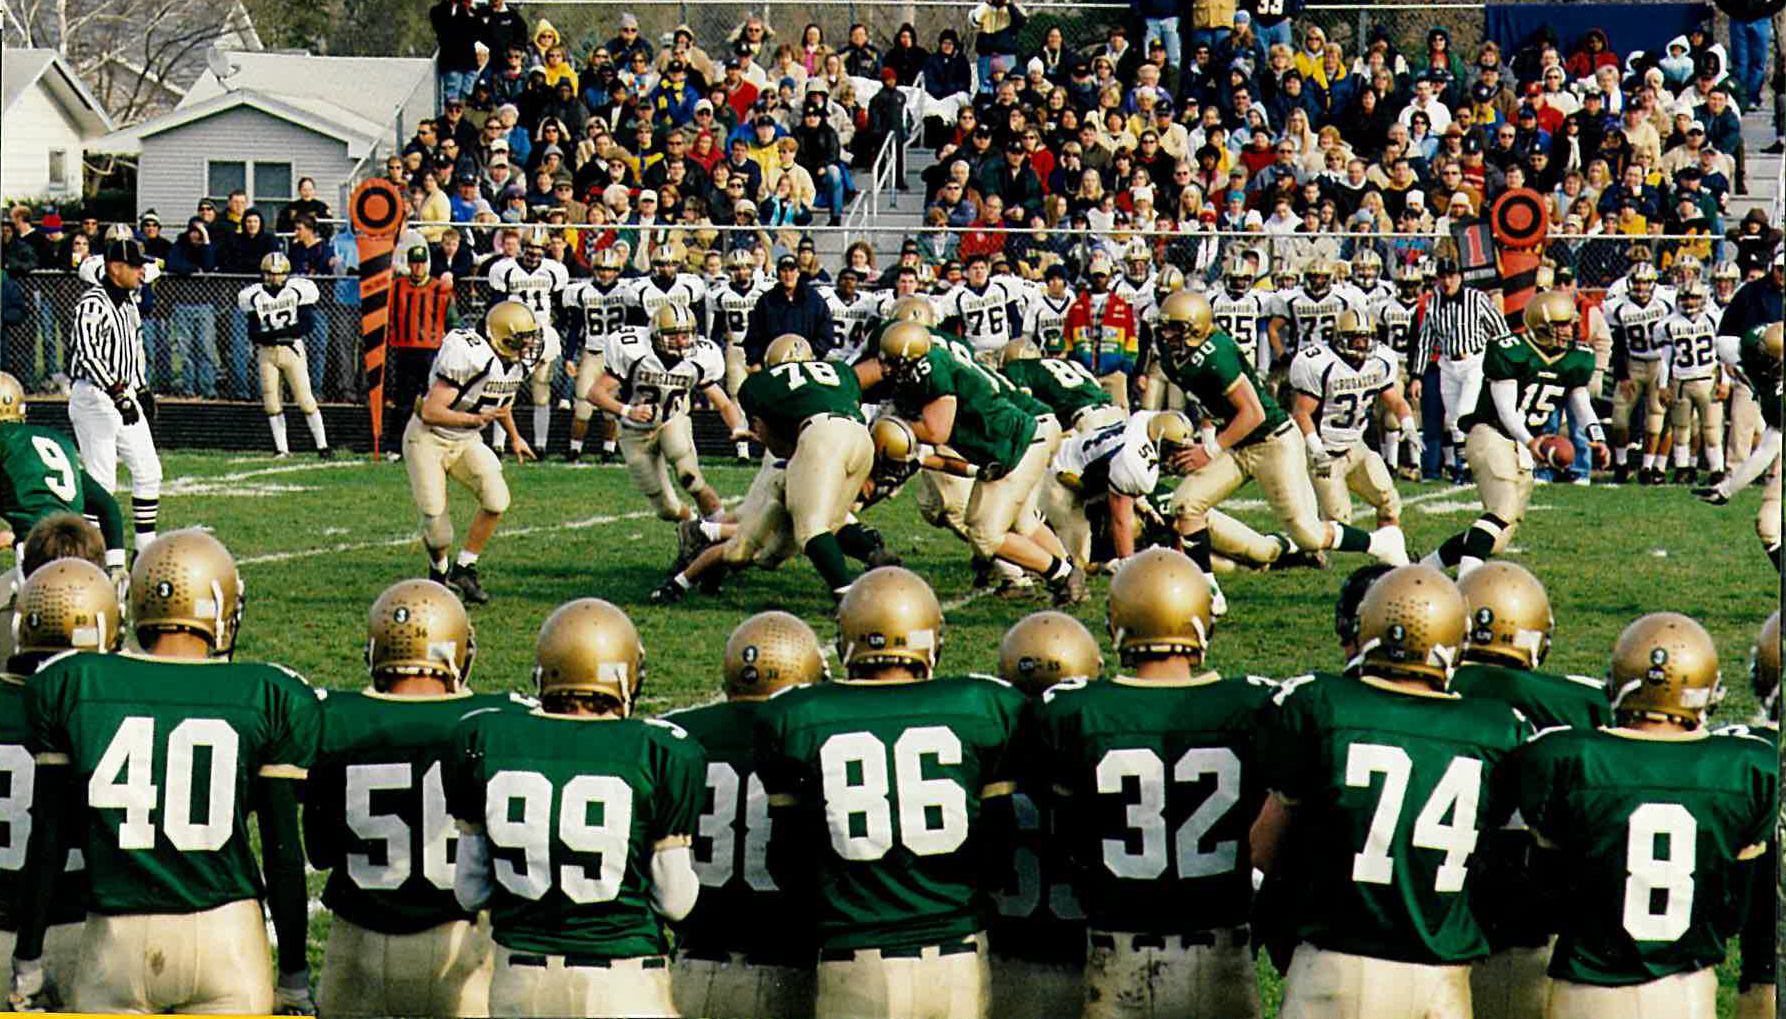 Talented '03 Mattoon football had the perfect game in routing powerhouse Althoff to reach state semifinals